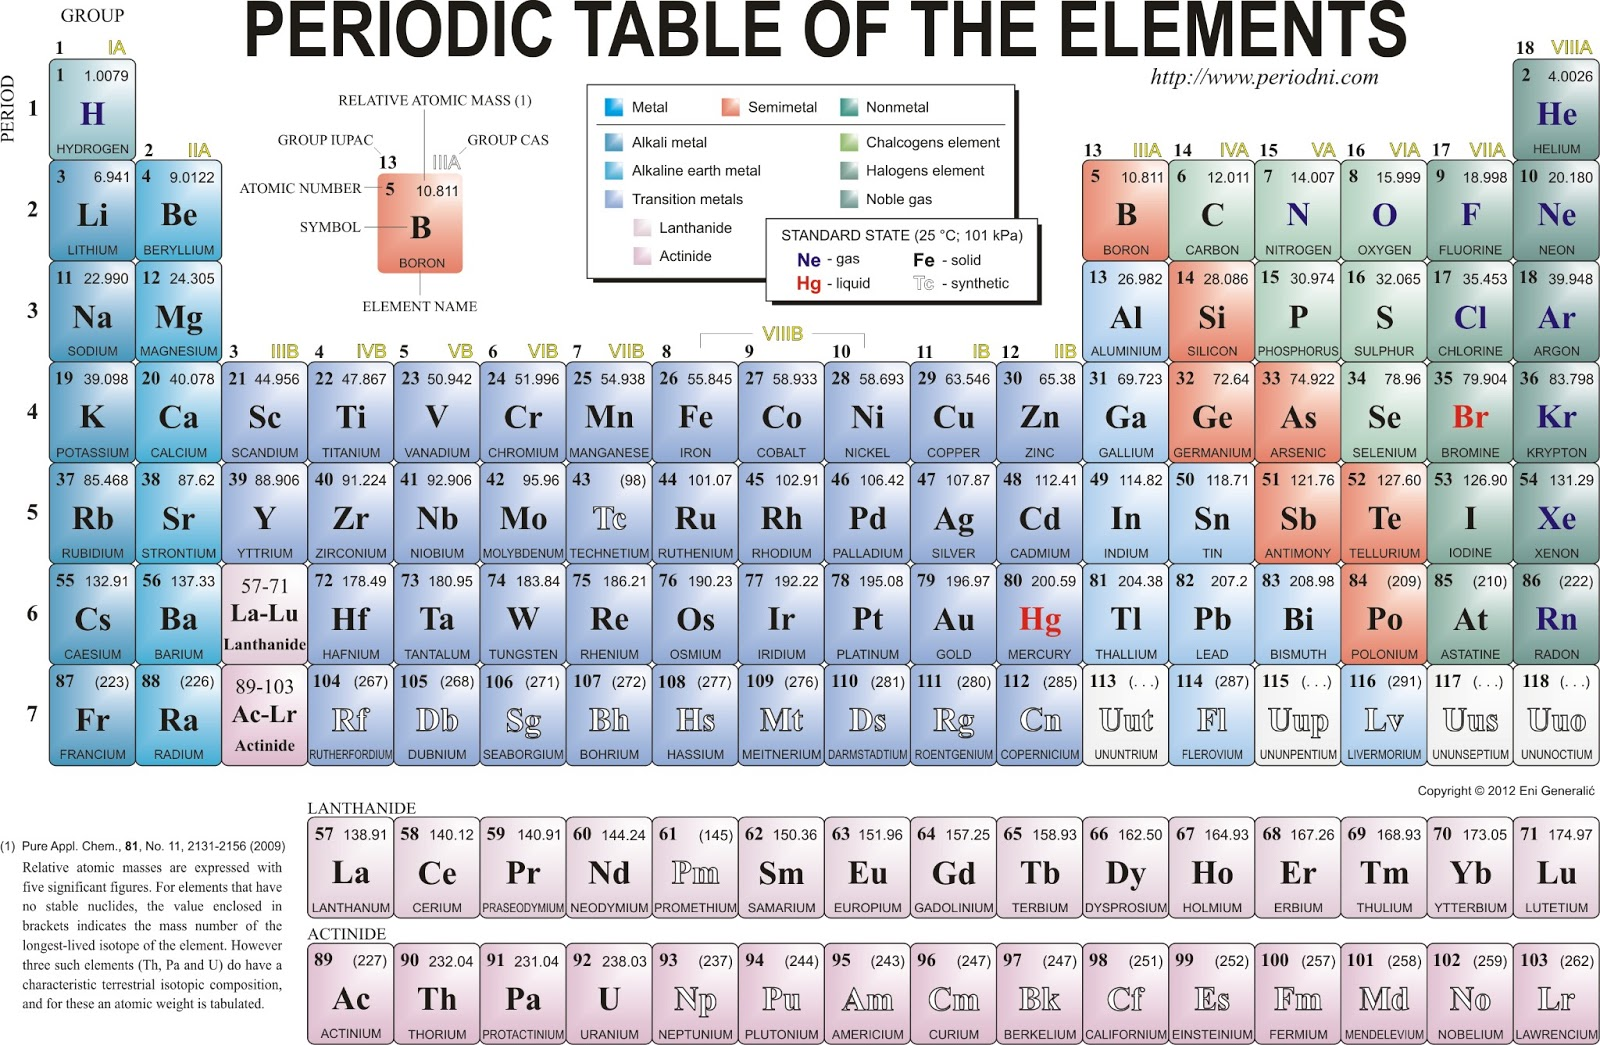 Chemizzle: Periodic Table of Elements Arrangement